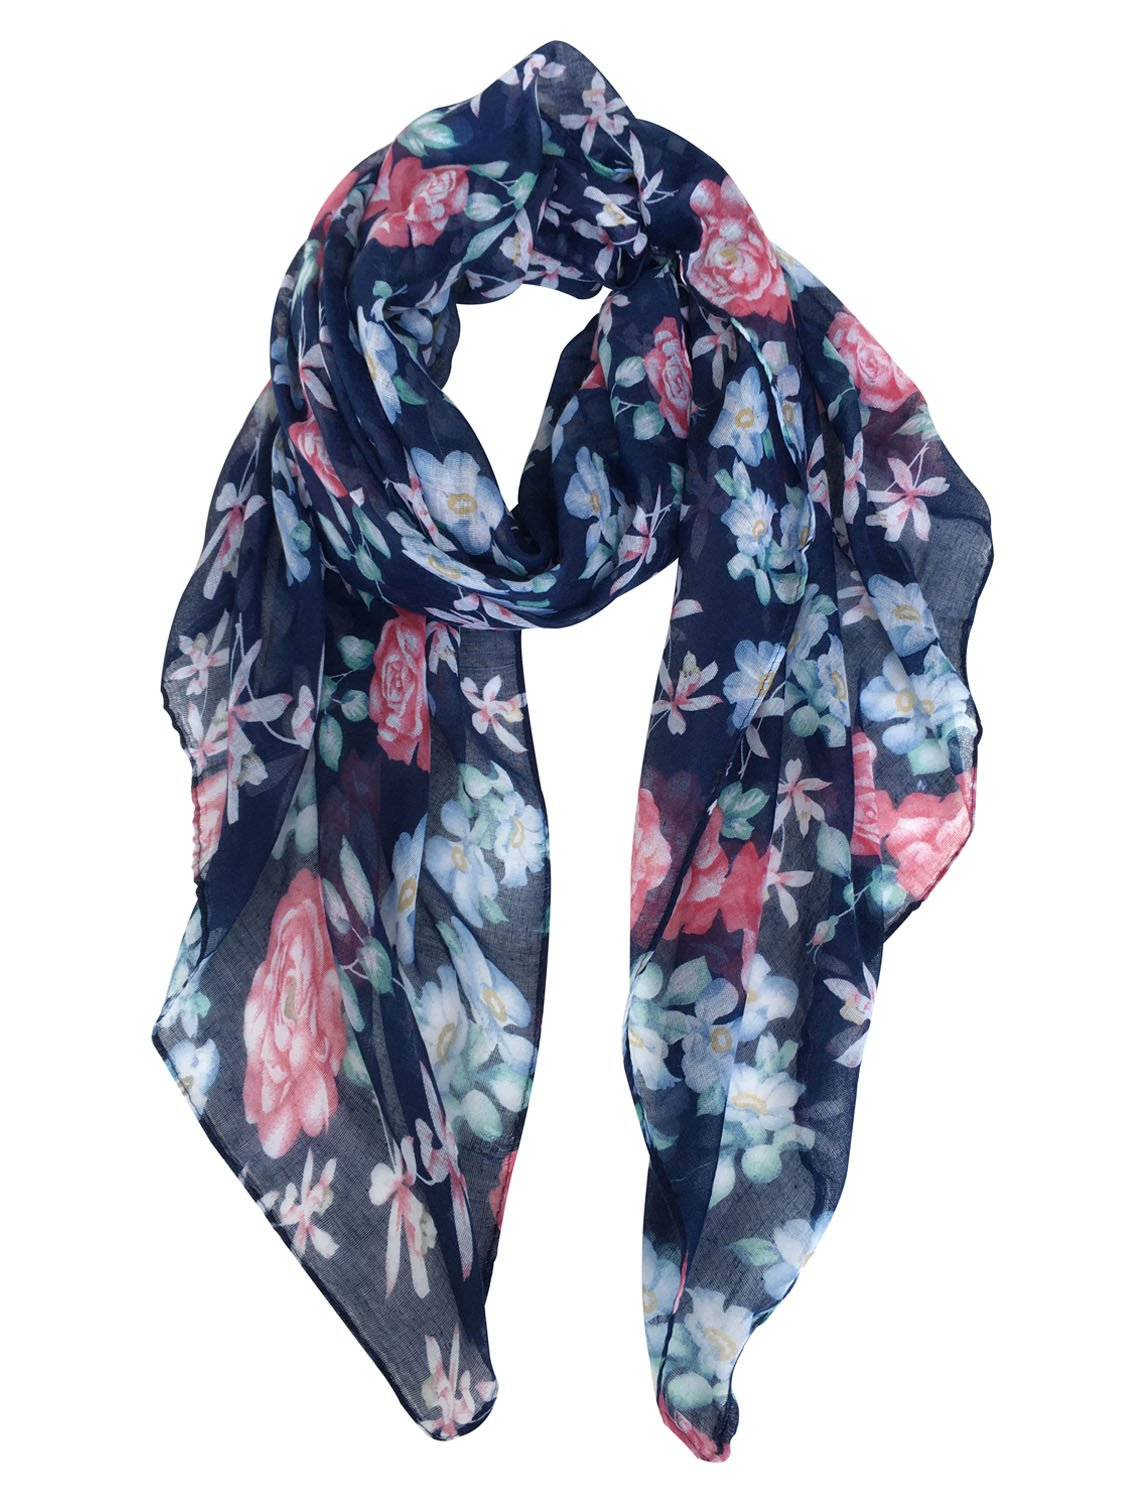 GERINLY Lightweight Scarves: Fashion Flowers Print Shawl Wrap For Women (Denim) e20-27c9256